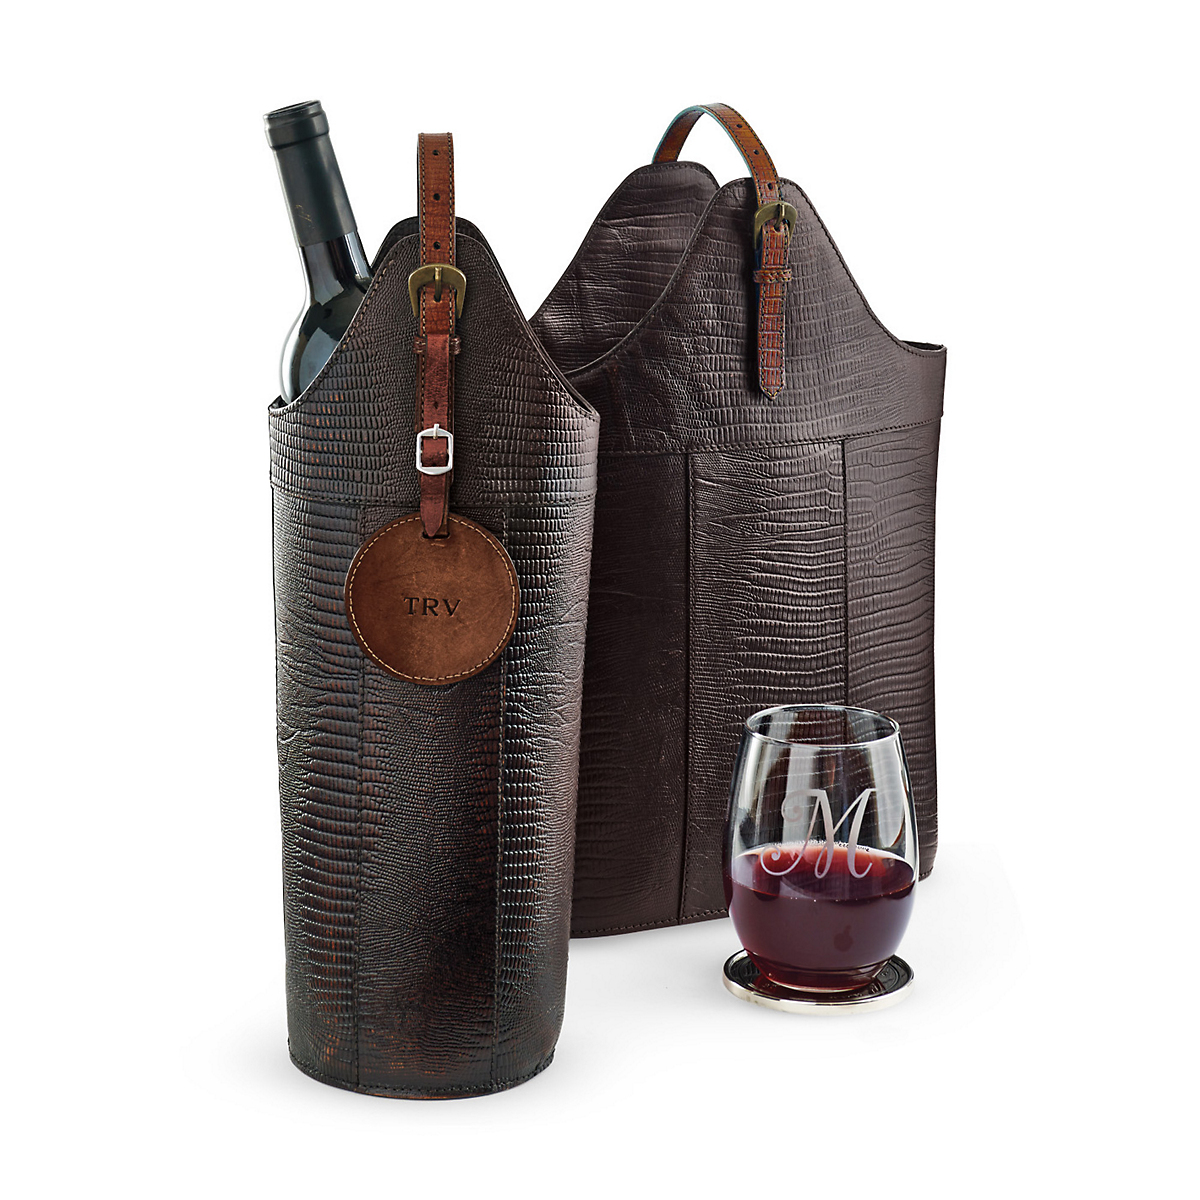 Estate Textured Wine Bottle Carriers